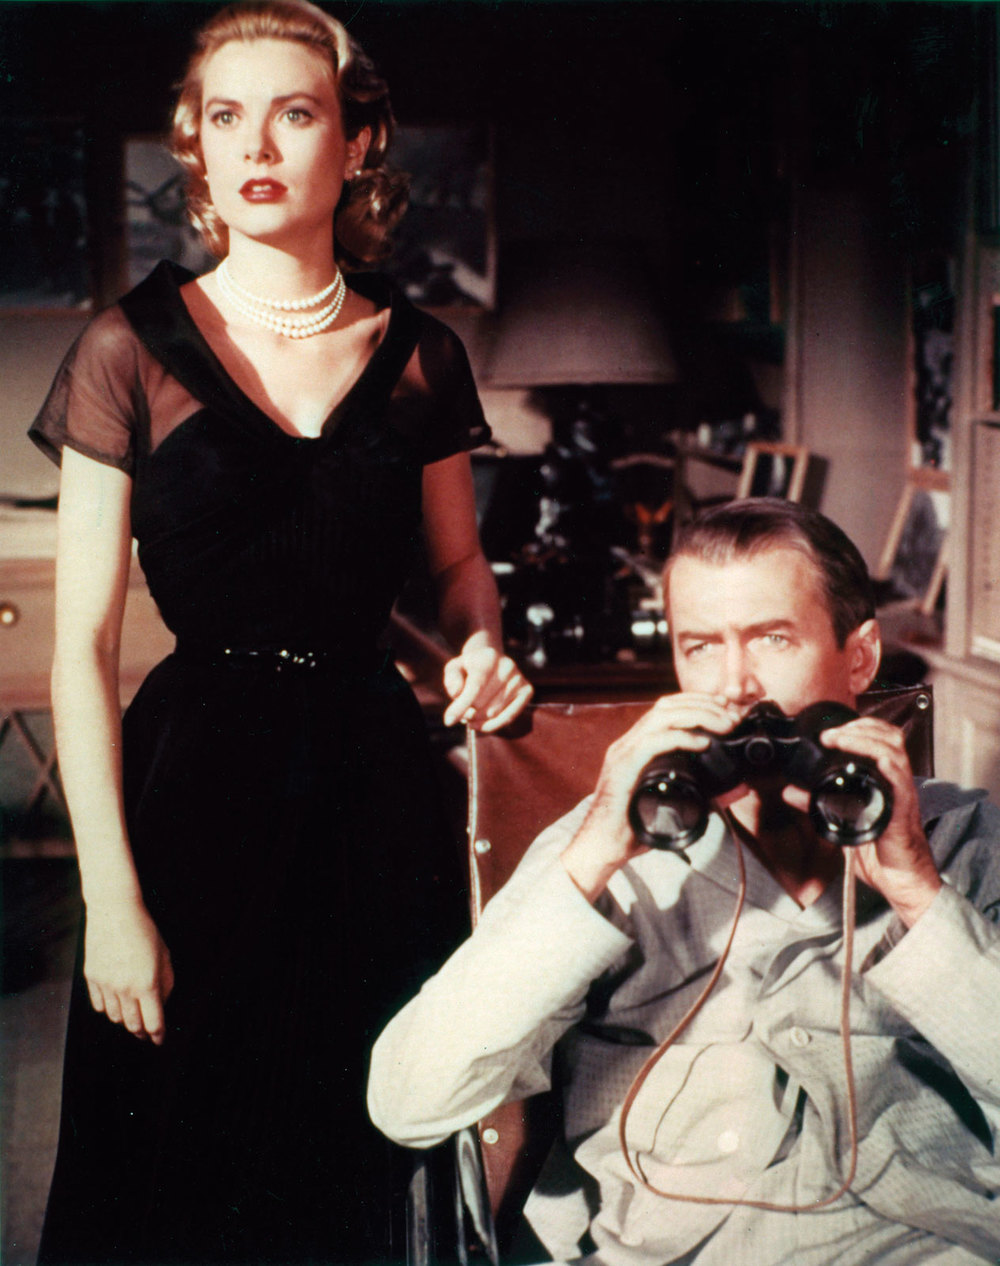 Still shot from Rear Window